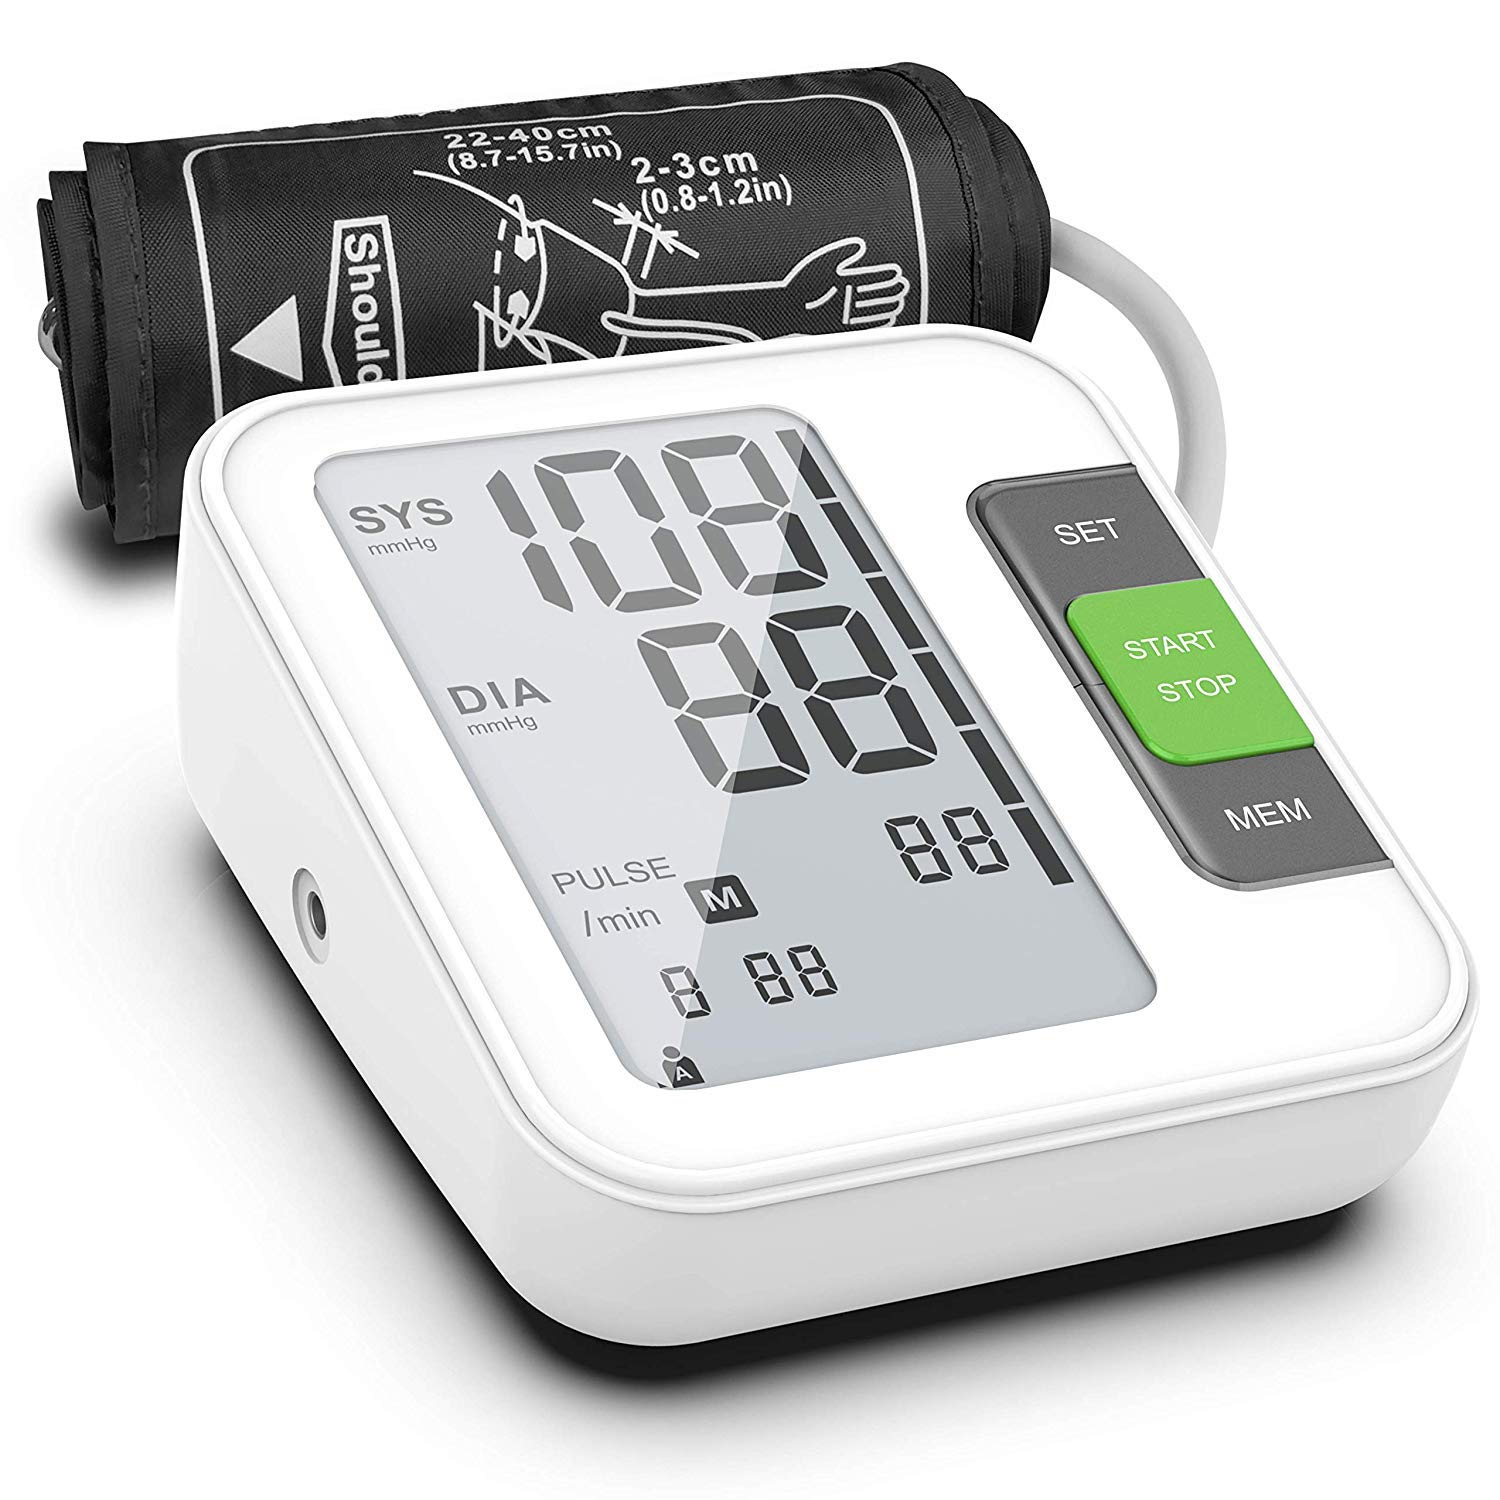 Latest Version Blood Pressure Monitor - Approved for Arm Use - Digital Blood Pressure Machine BP healthybody080828 by STARLIKE